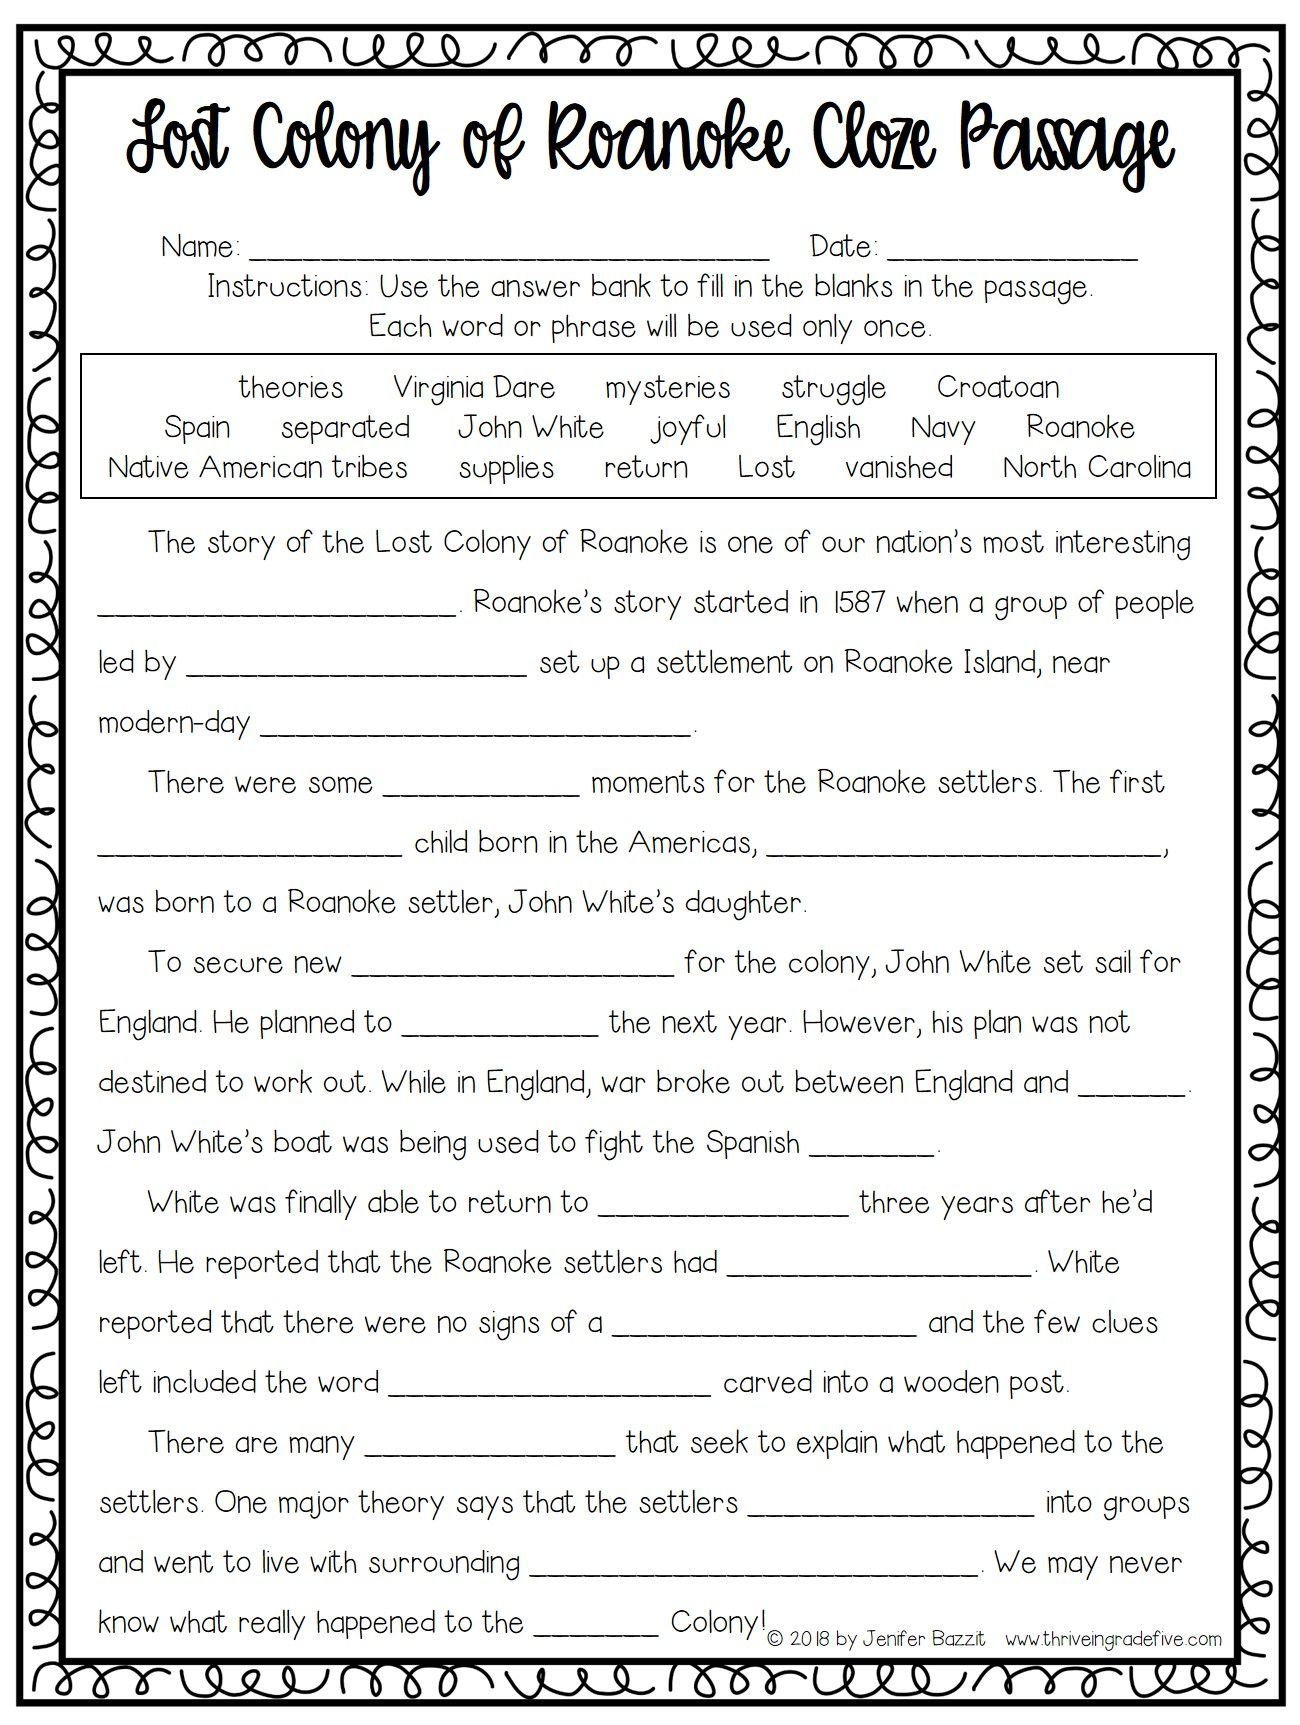 medium resolution of Lost Colony of Roanoke activity - FREE!   History worksheets